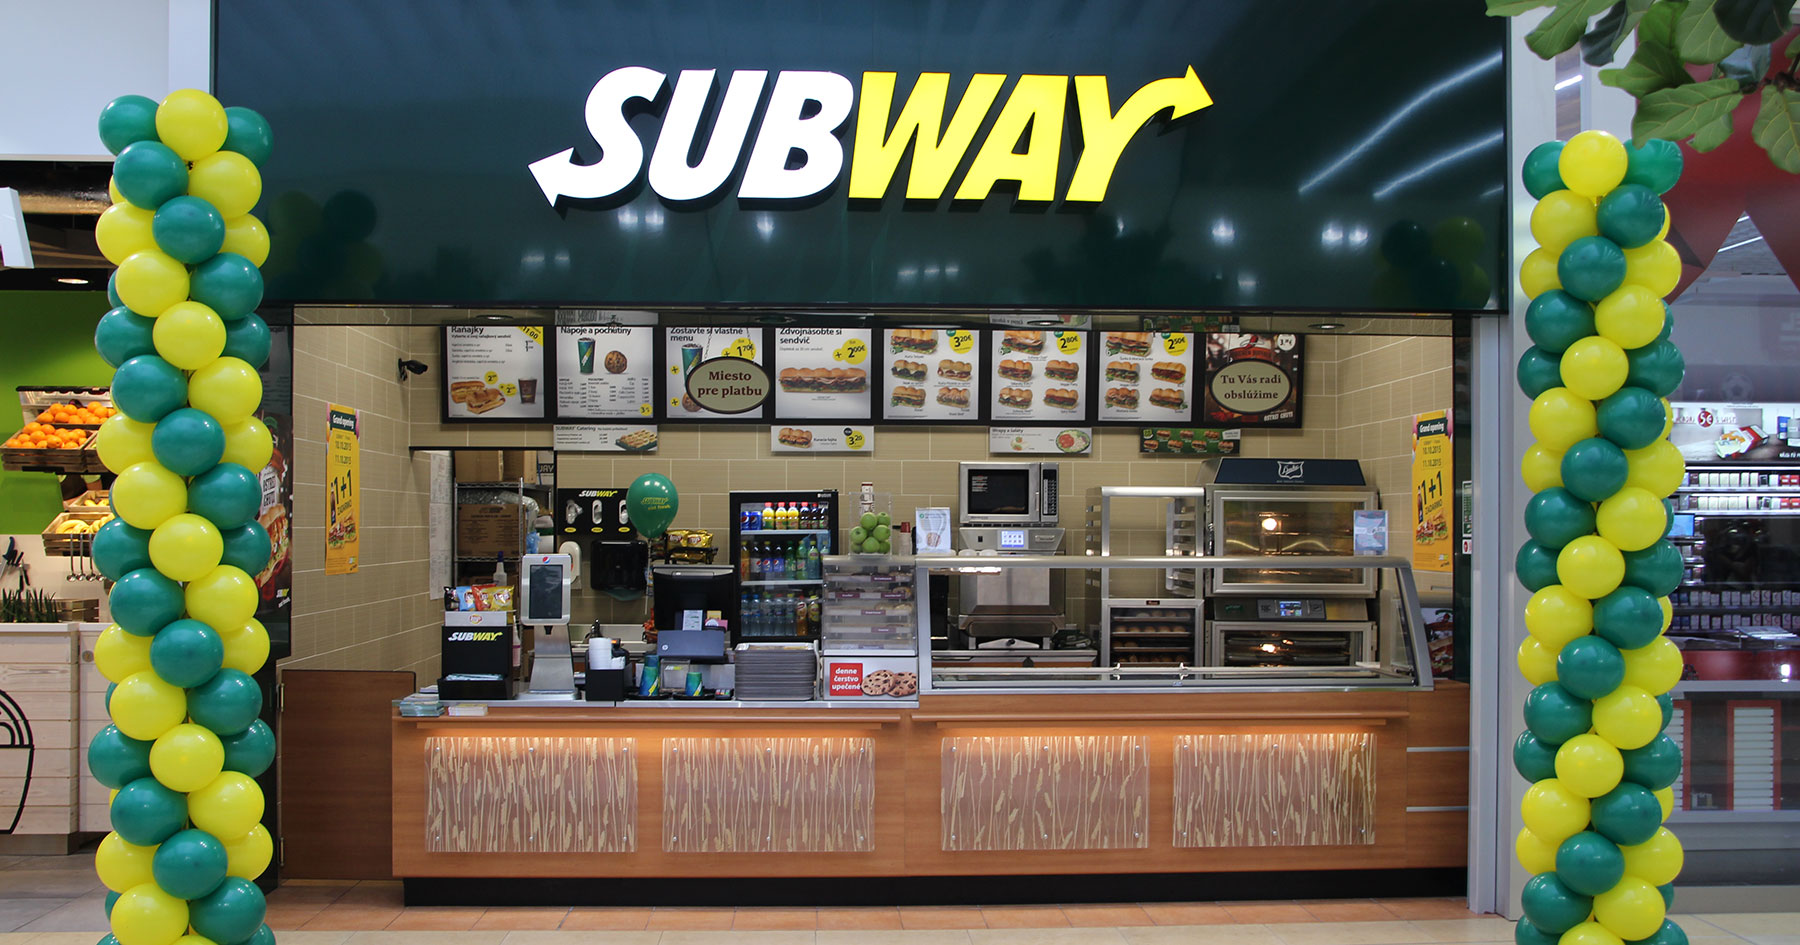 marketing and subway sources Both of the brand's slam-dunk marketing campaigns turned into liabilities in the past few years jared fogle, who popularized the subway diet and lent a healthy glow to the chain, was sentenced to 15 years in prison for child pornography and sex crime charges.